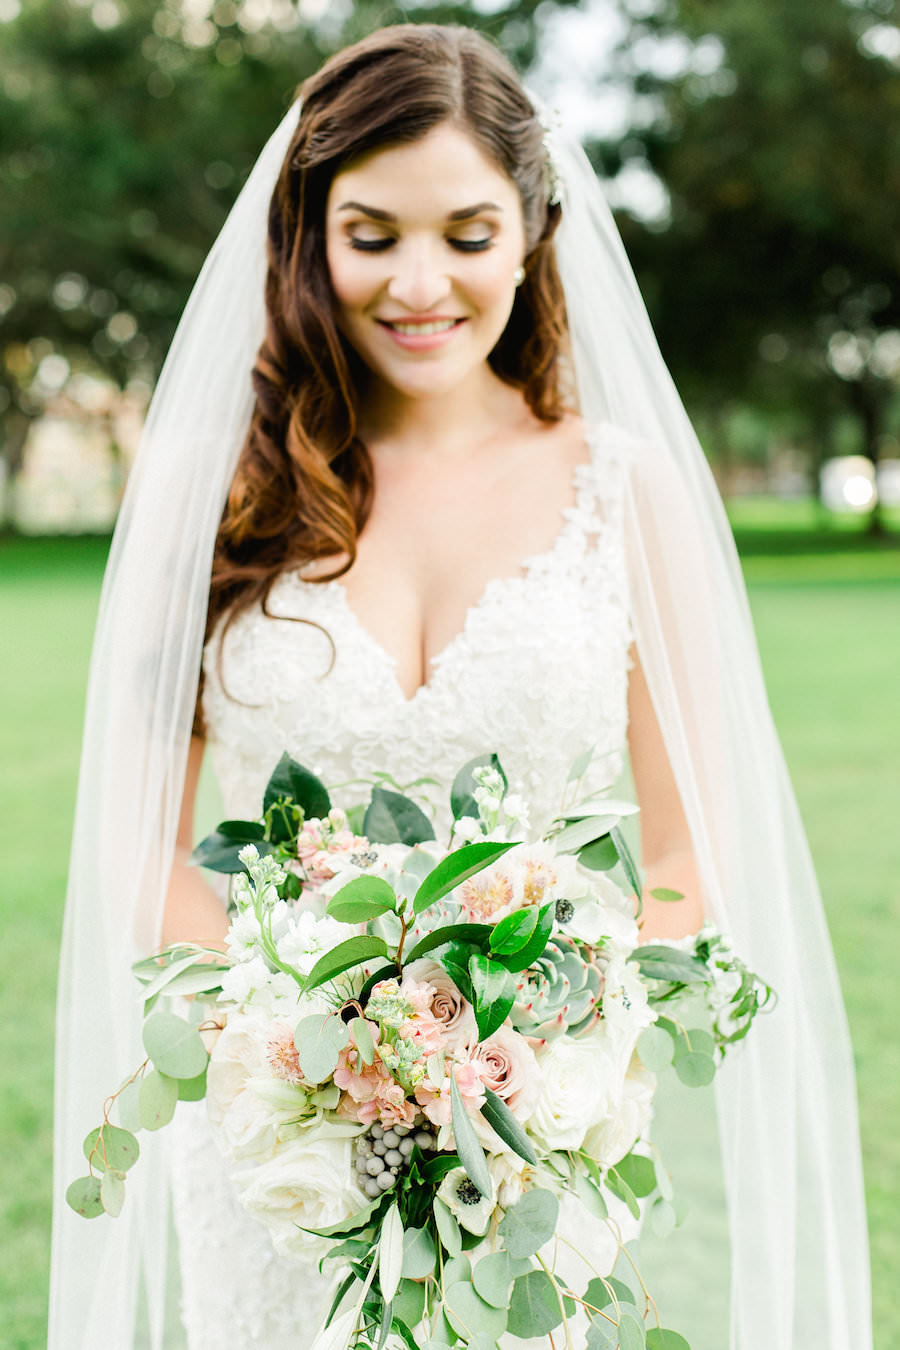 Outdoor, Downtown St. Petersburg Bridal Portrait   Tampa Bay Wedding Photographer Ailyn La Torre Photography